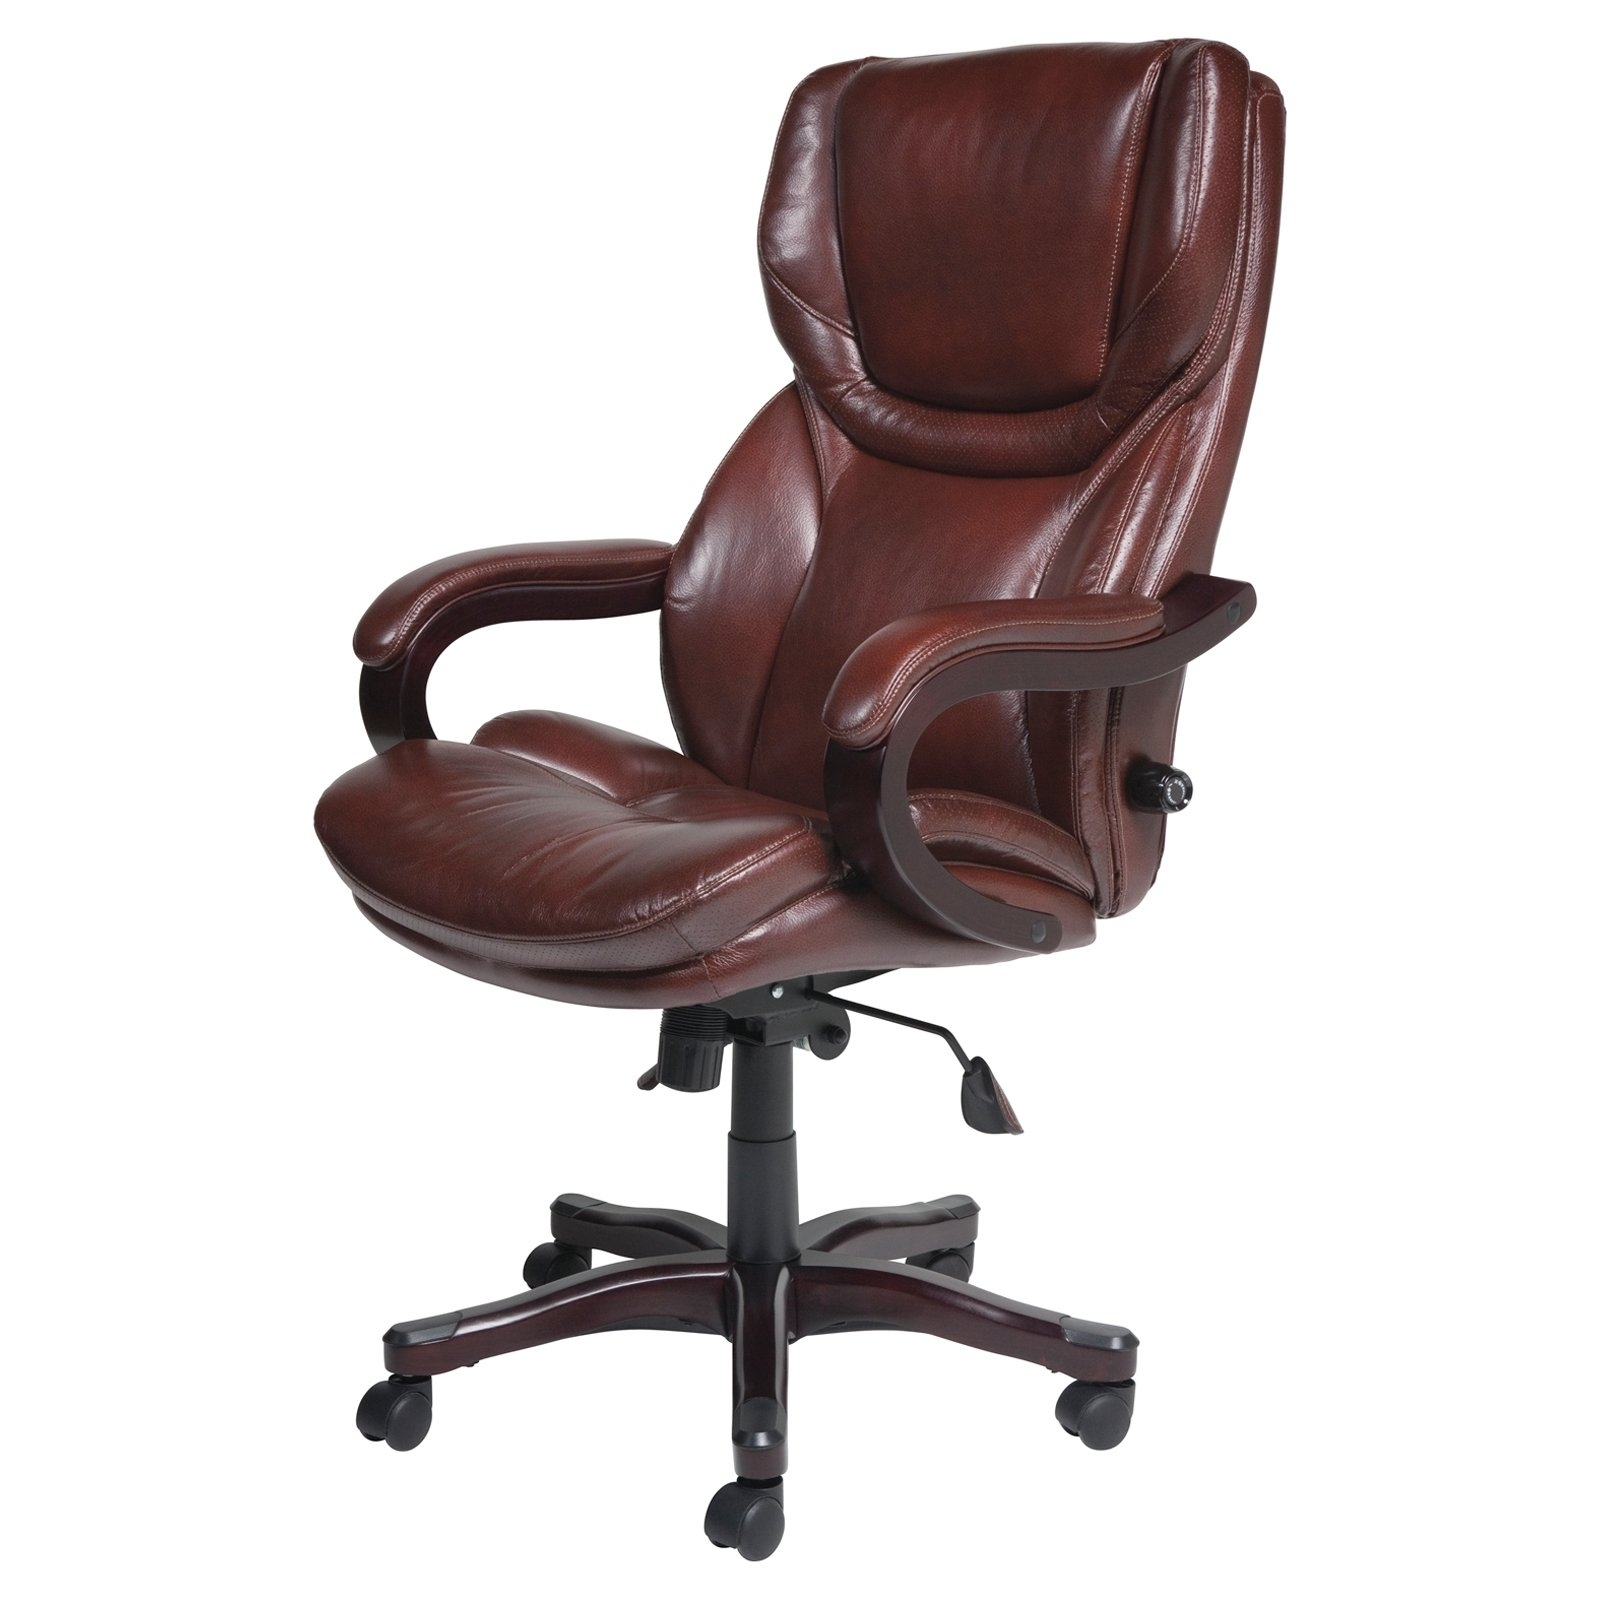 2018 Chair : Ergonomic Black Leather Executive Office Chair Verona Throughout Ergonomic Executive Office Chairs (View 2 of 20)